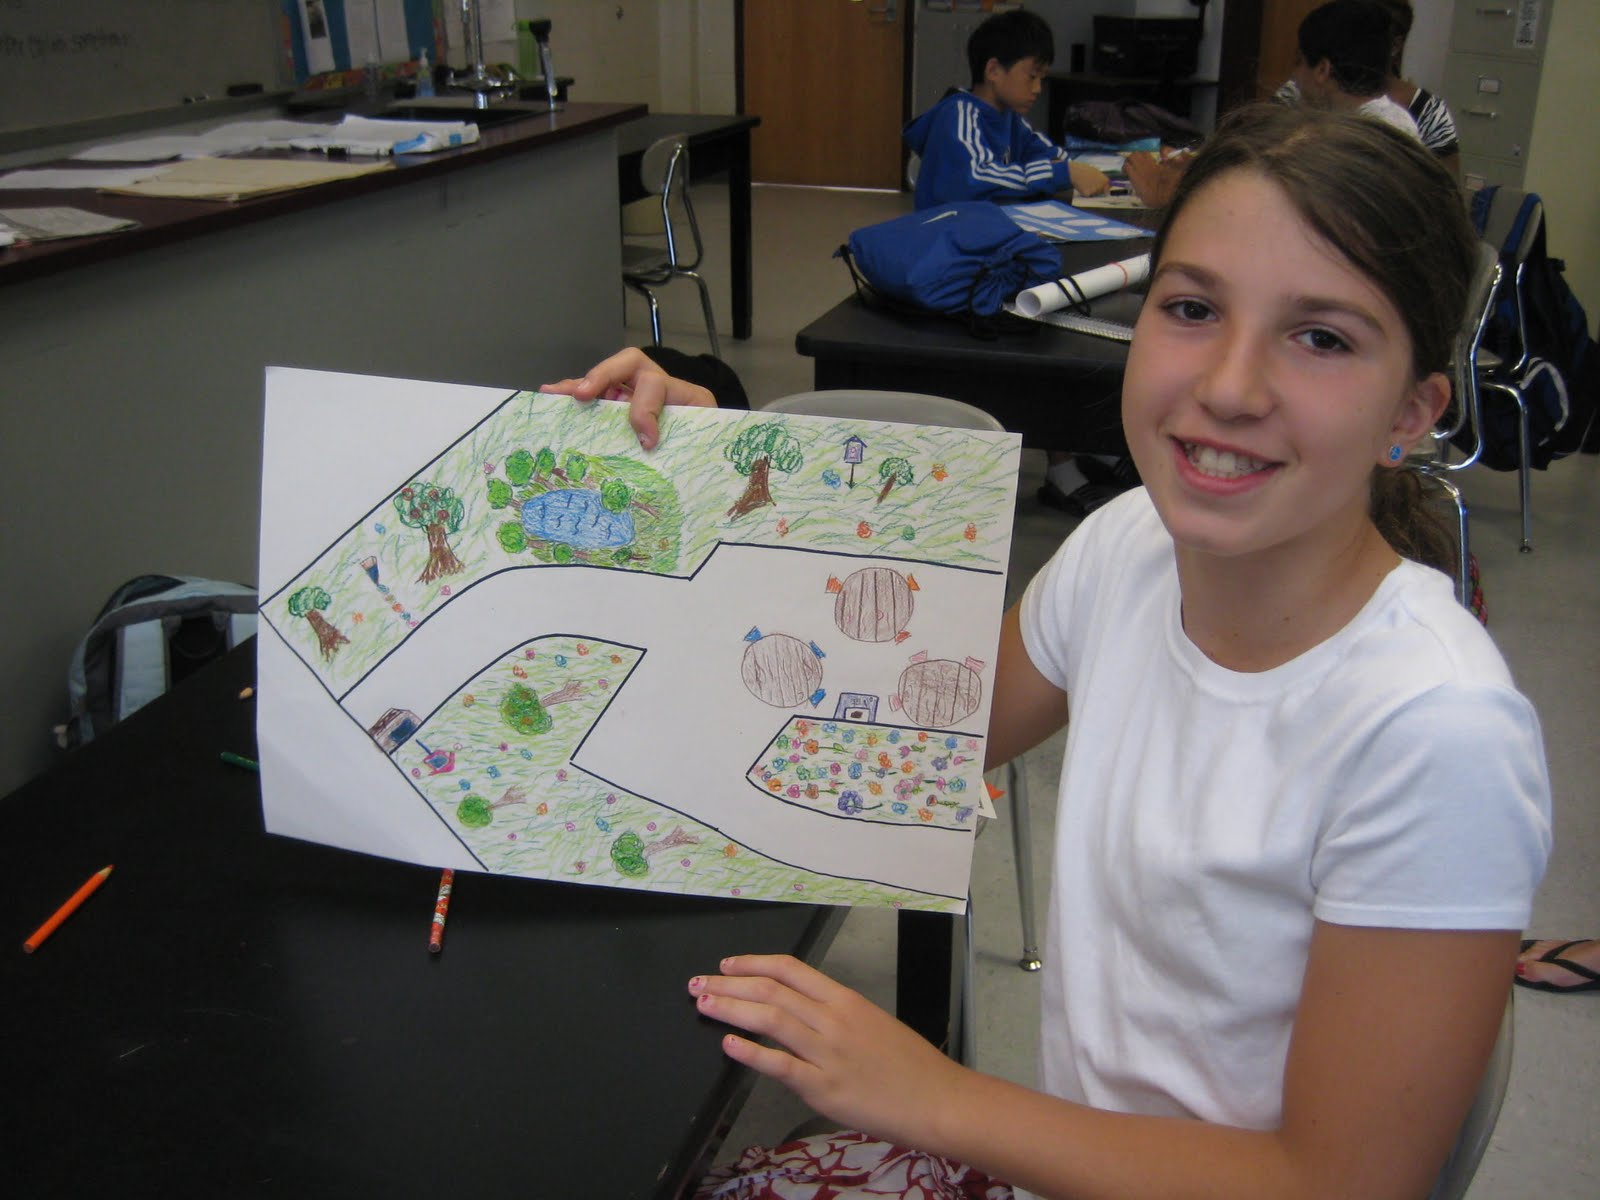 Outdoor Classroom Design Plans : Places and spaces outdoor classroom design challenge